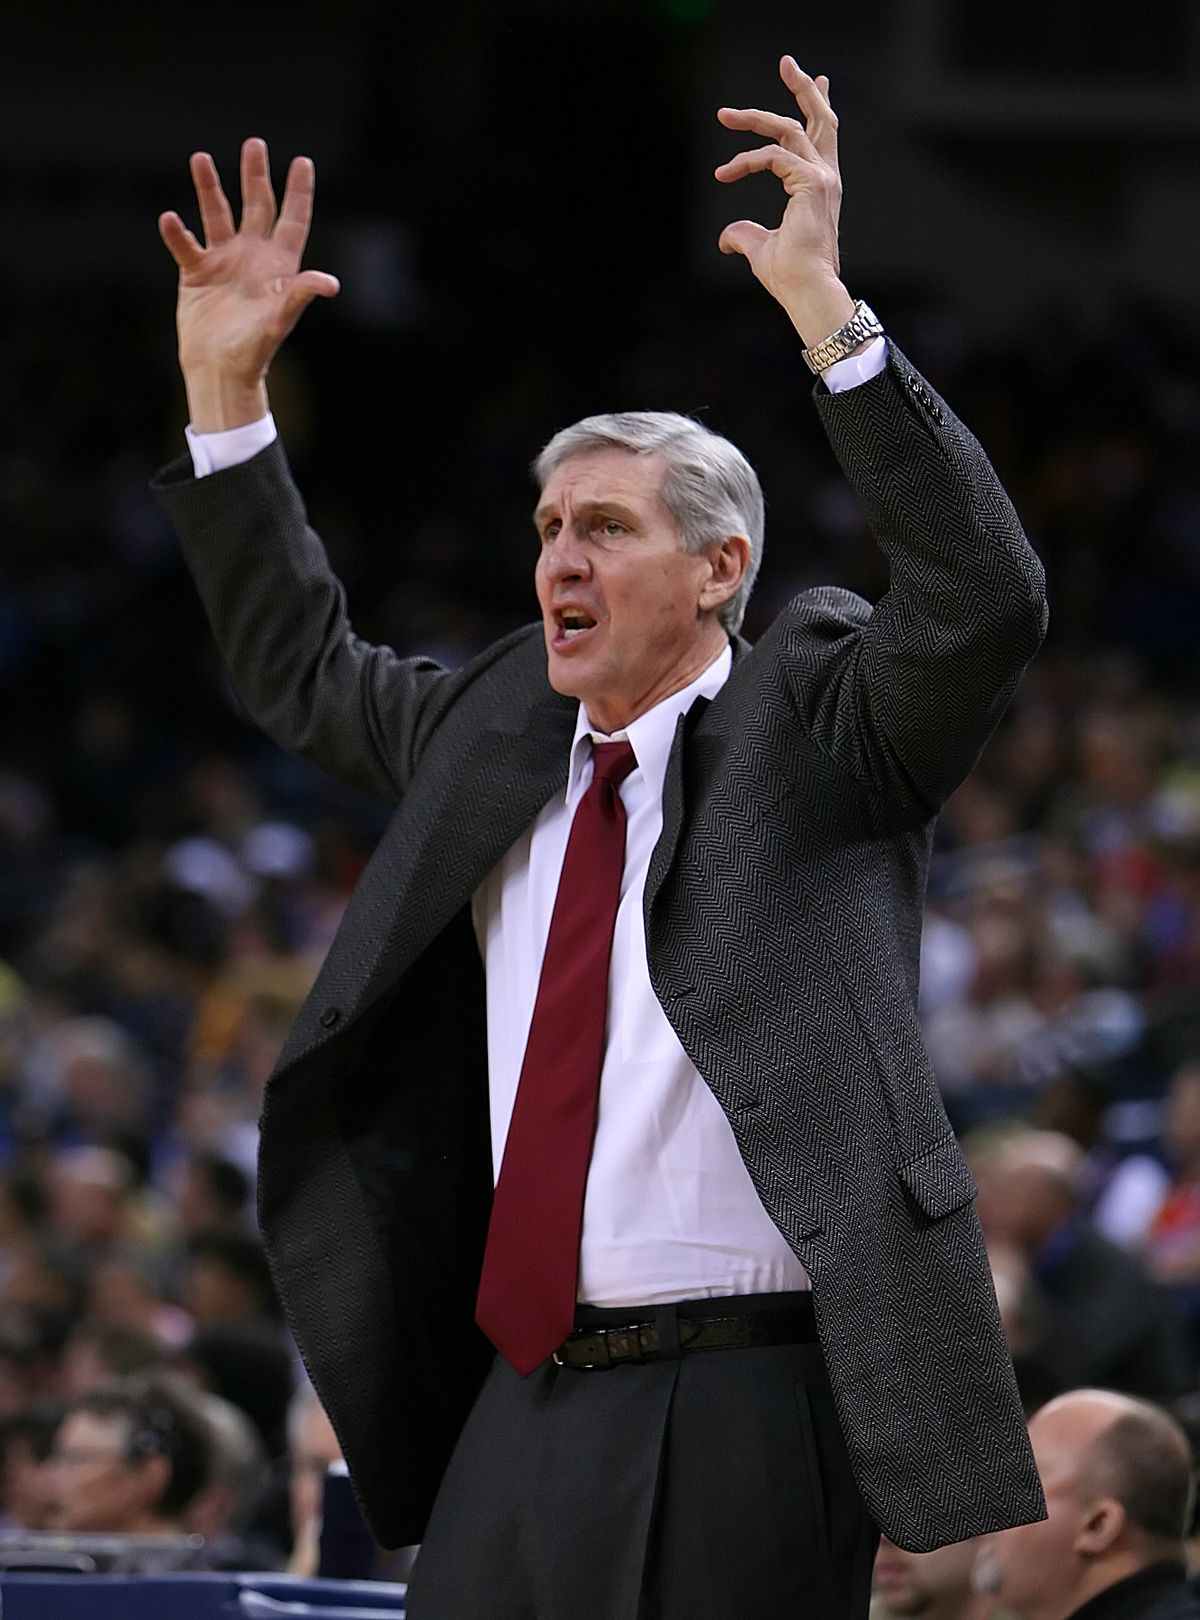 Utah Jazz's head coach Jerry Sloan argues a foul called against his player Jarron Collins, #31, while playing against the Golden State Warriors in the 1st quarter of their game on Monday, February 27, 2006 at The Arena in Oakland, Calif. (Jose Carlos Faja